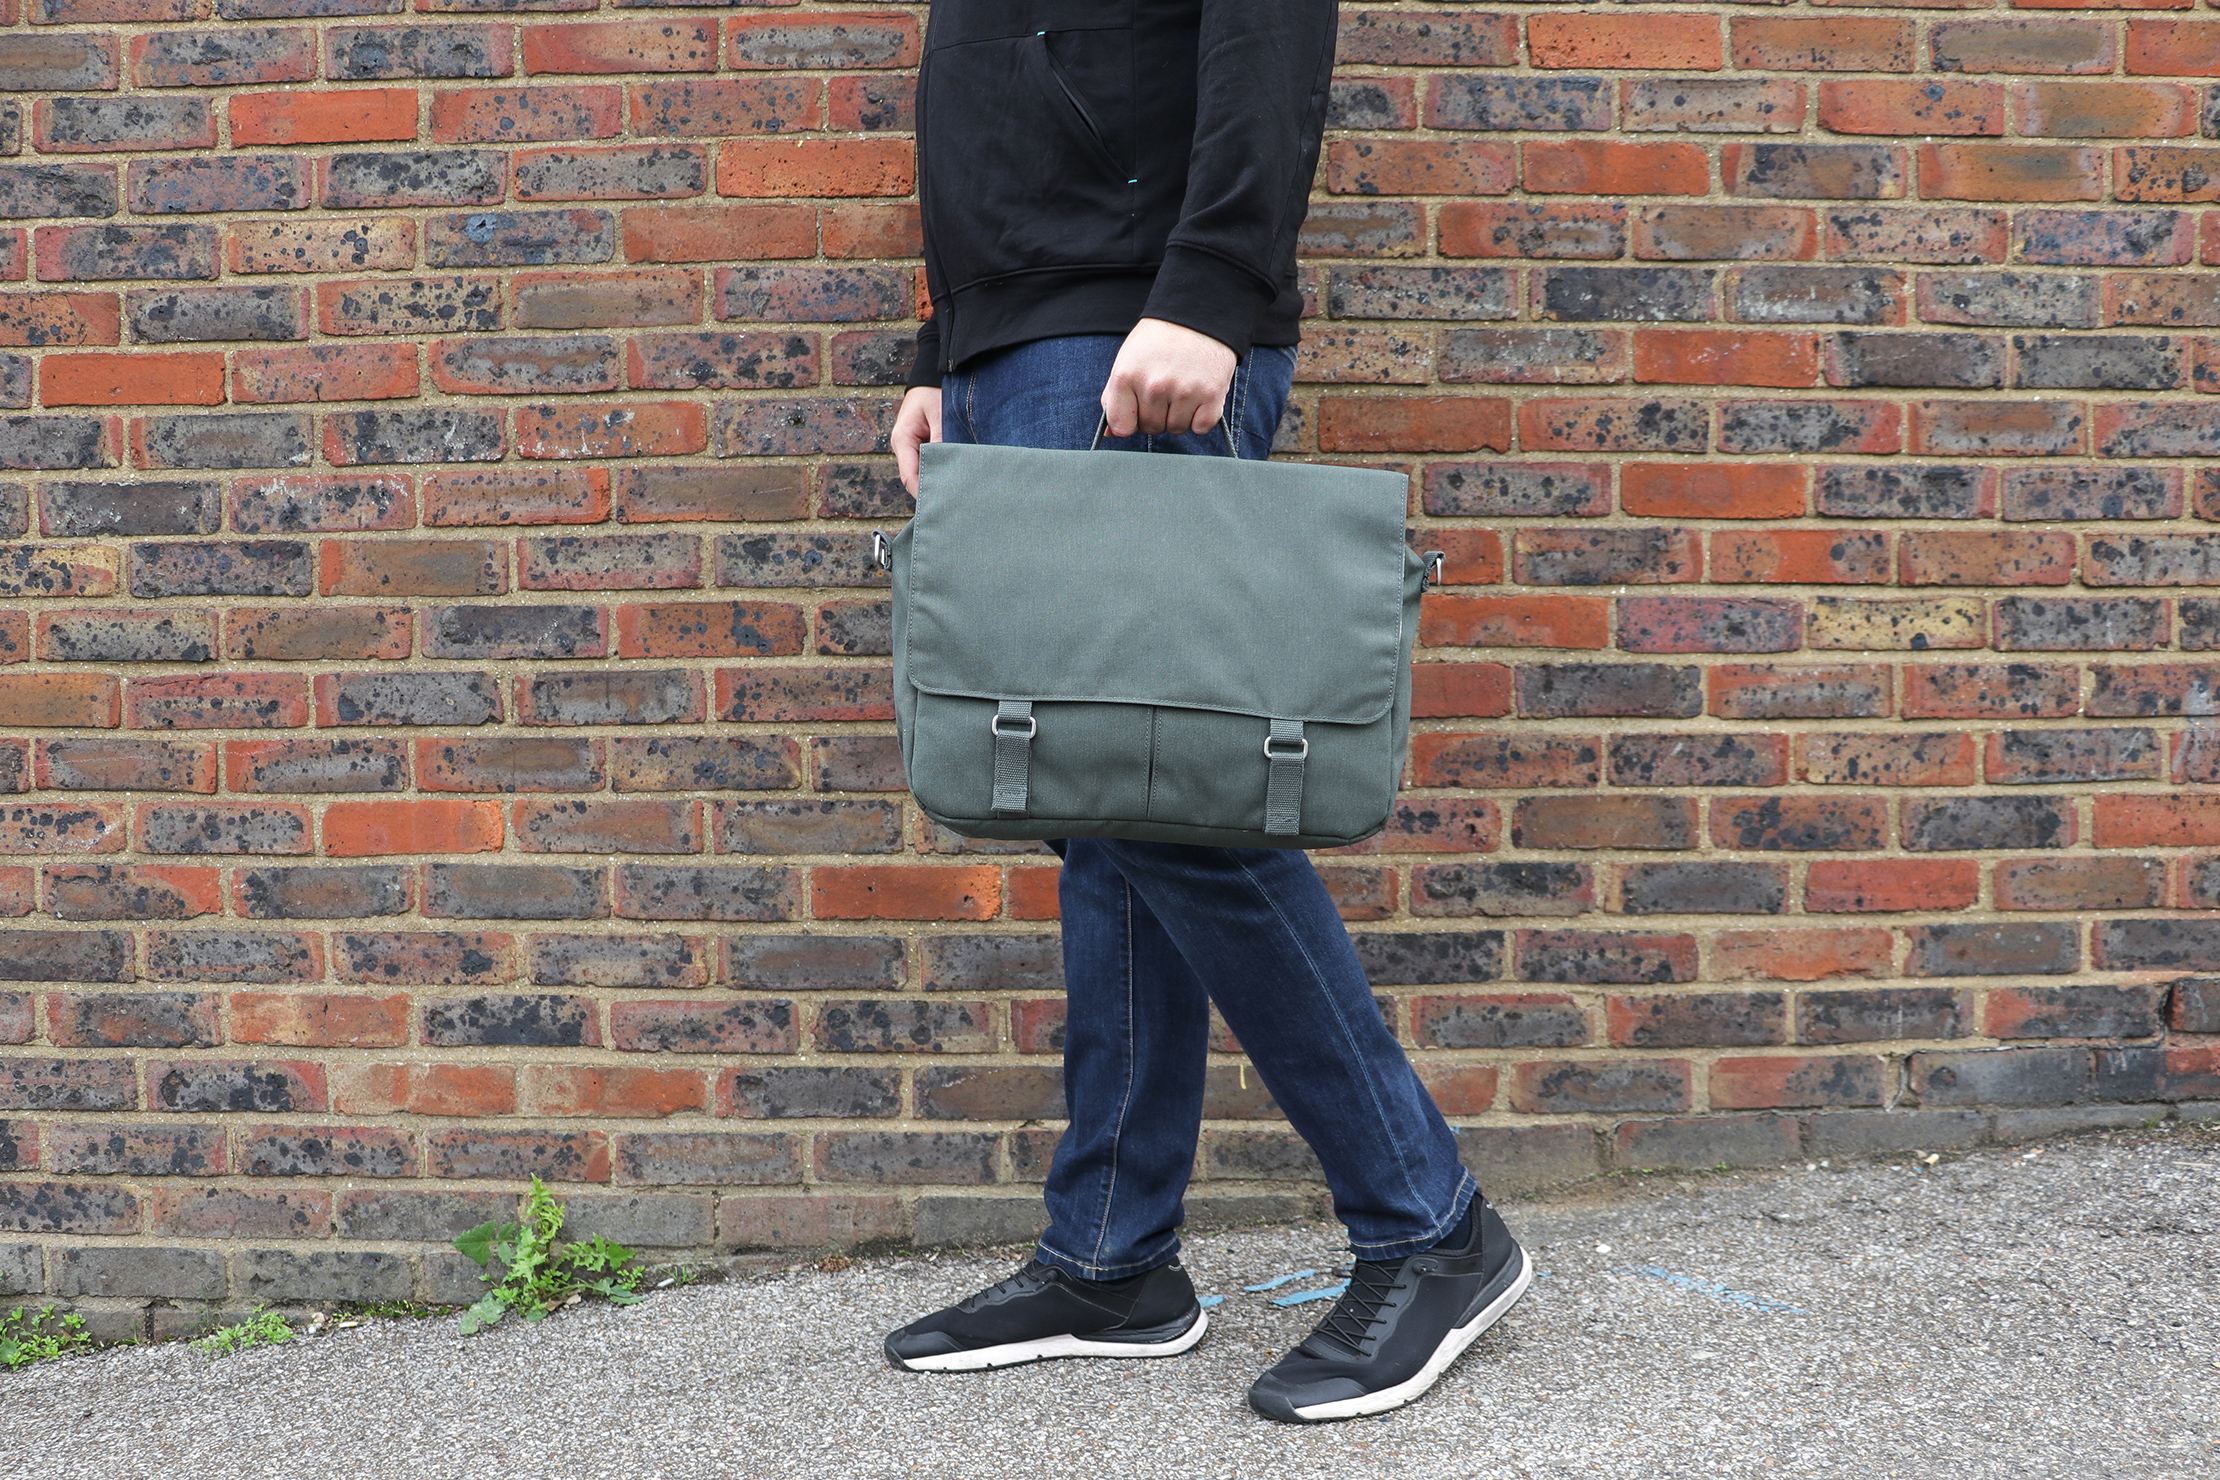 IKEA DROMSACK Messenger Bag in Essex, England